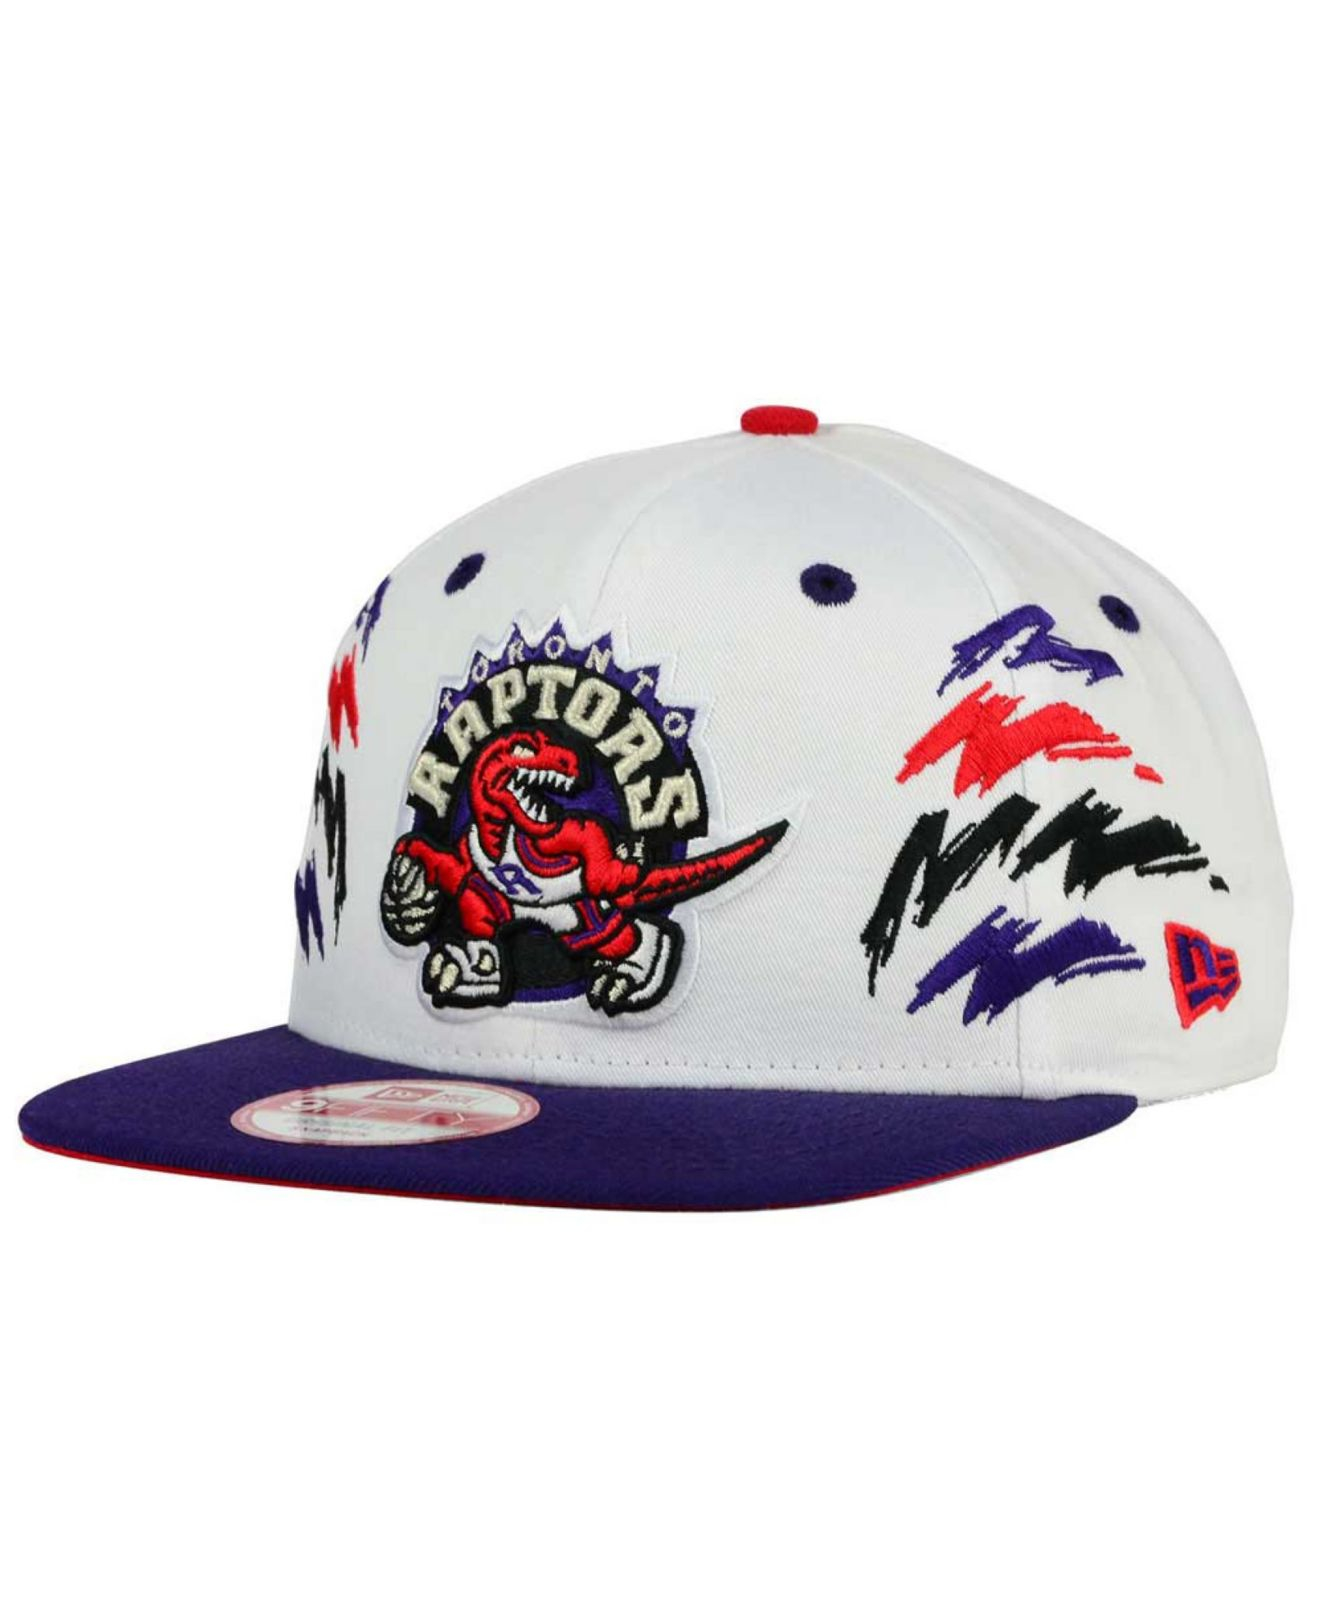 finest selection 85f83 3abb7 ... canada lyst ktz toronto raptors old cool 9fifty snapback cap in blue  for men 7246b 63f8e